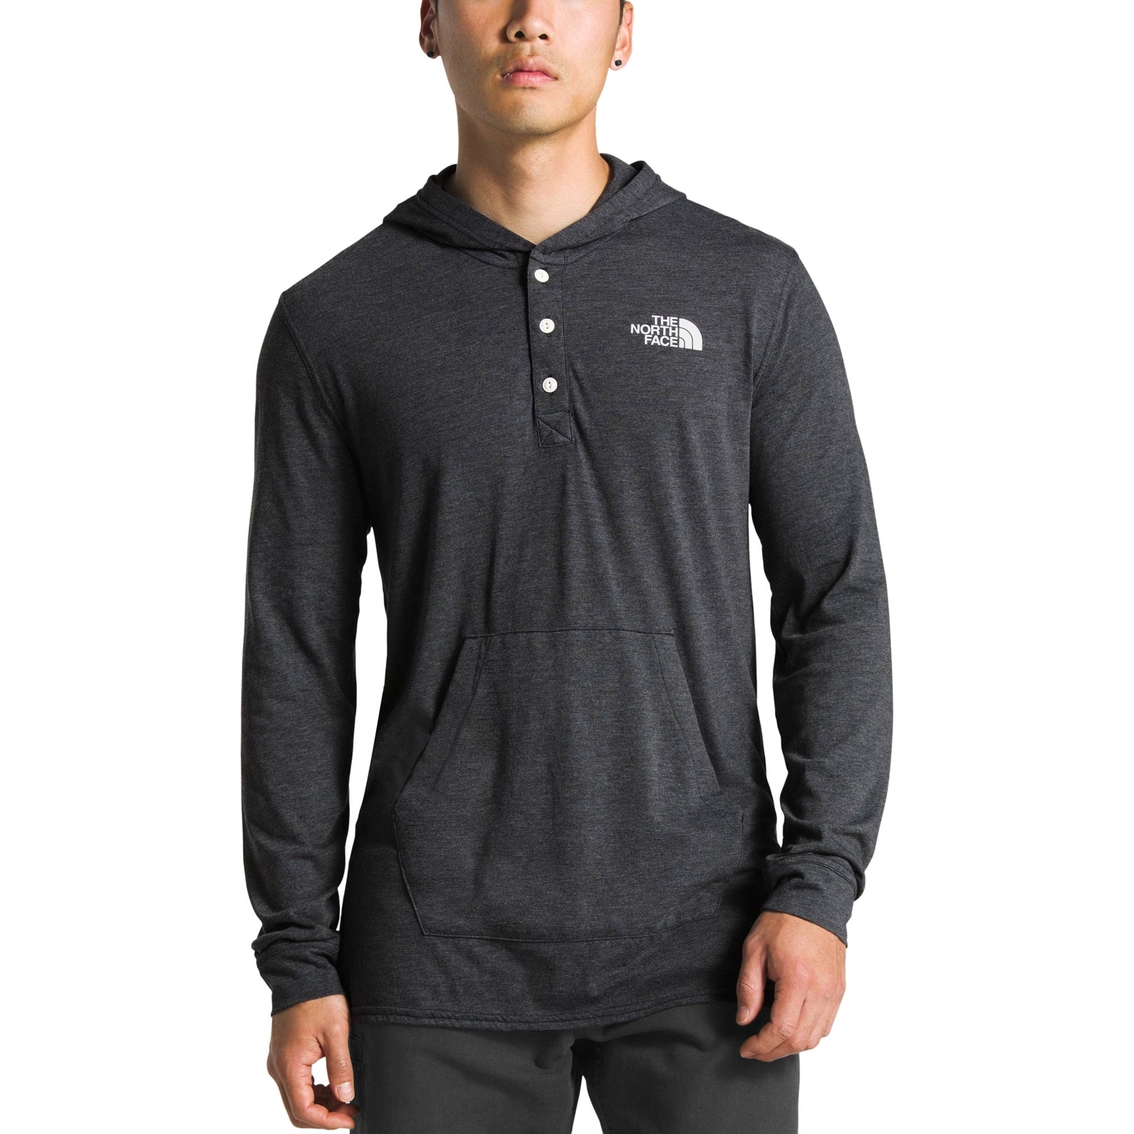 109b56bfe The North Face Tri-blend Henley Hoodie | Sweatshirts & Hoodies ...